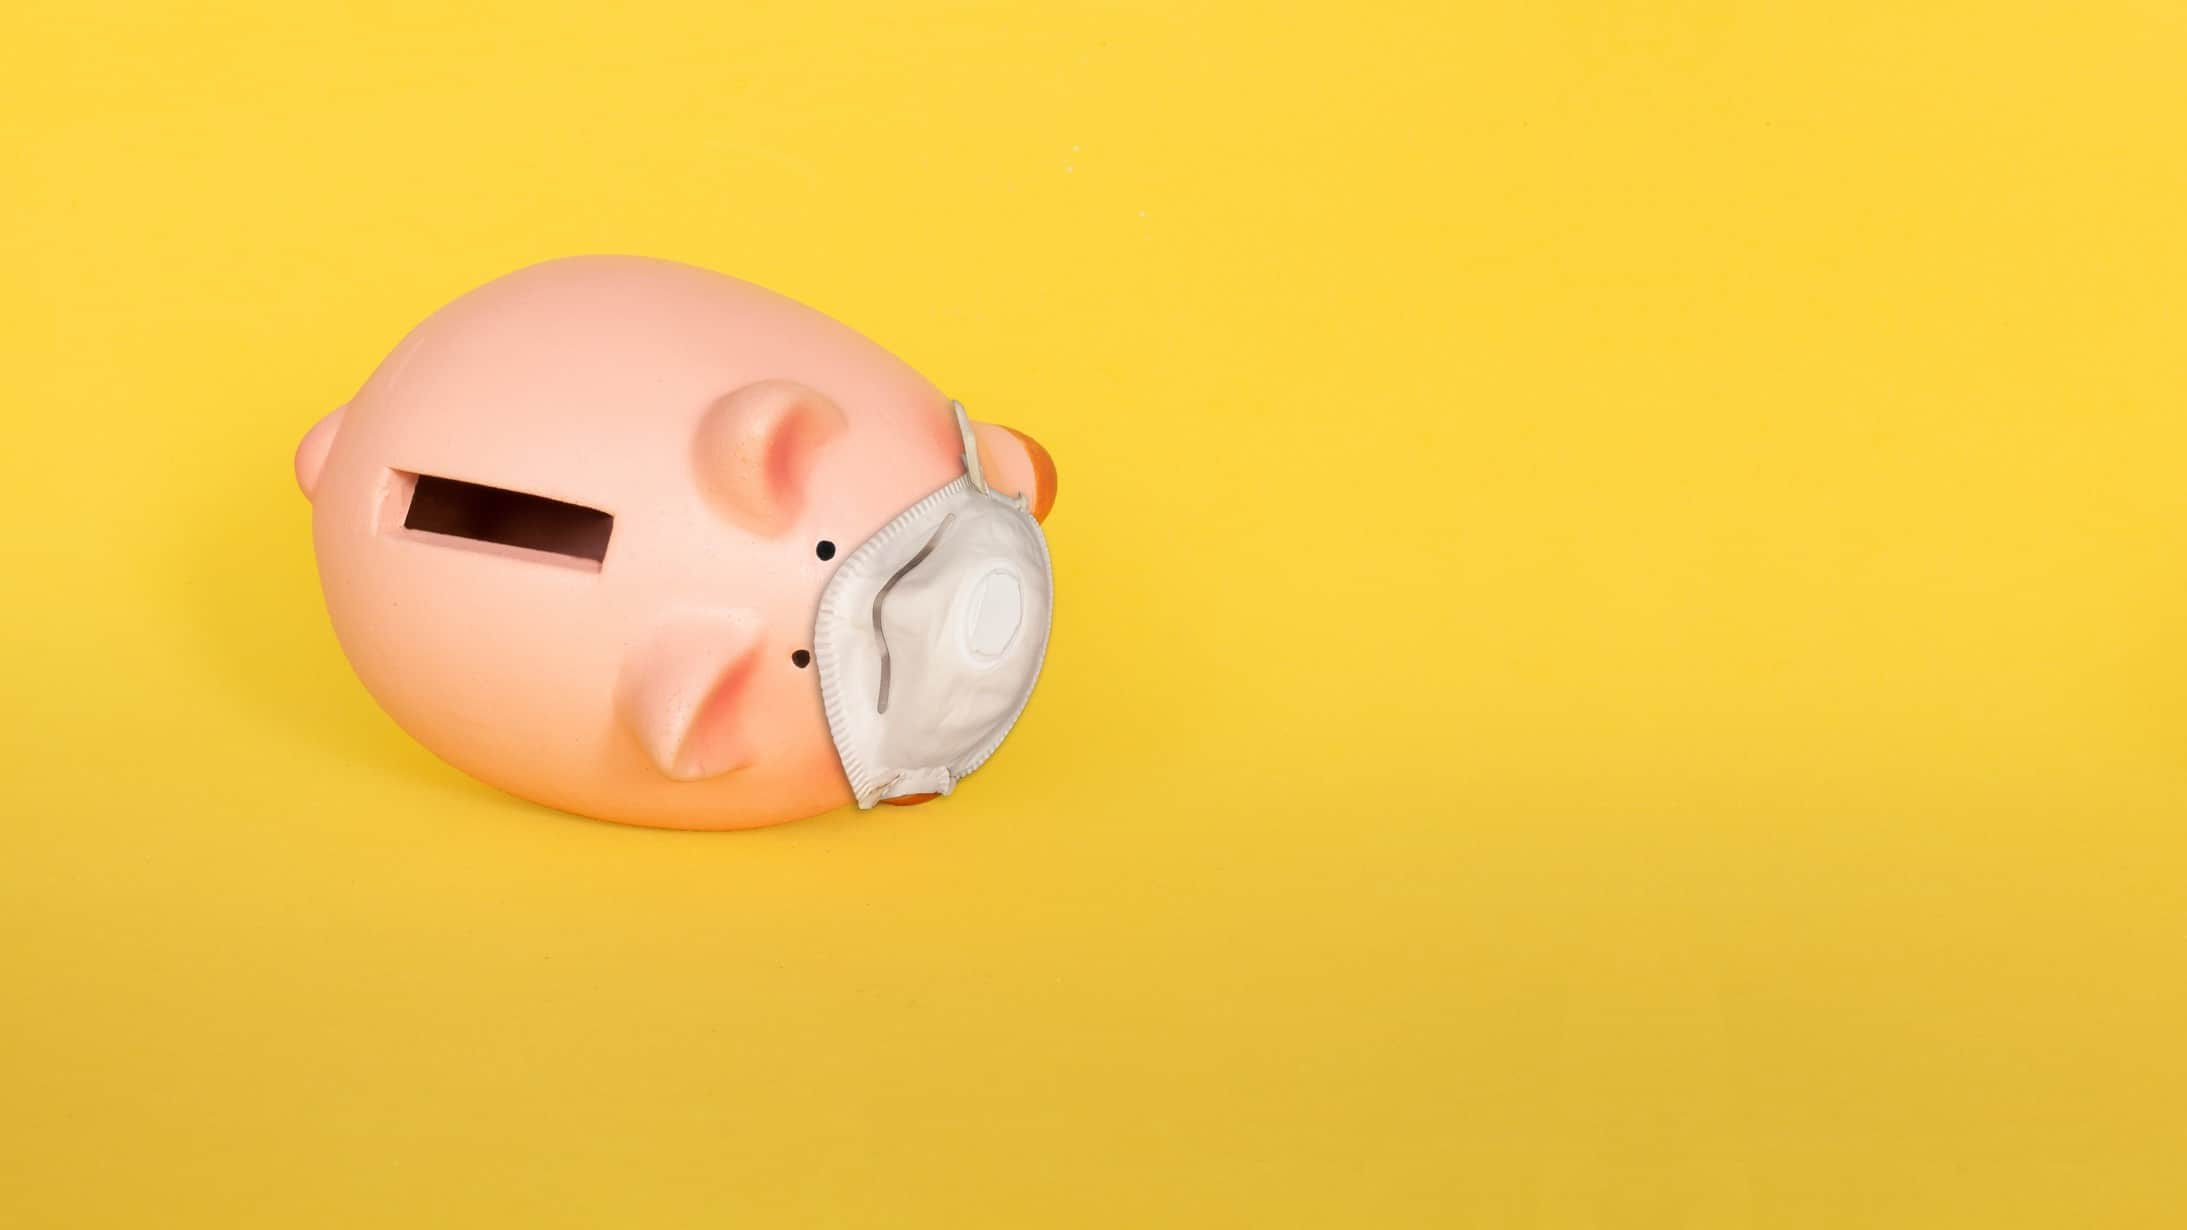 falling mayne pharma share price represented by piggy bank wearing doctor's mask having fallen over